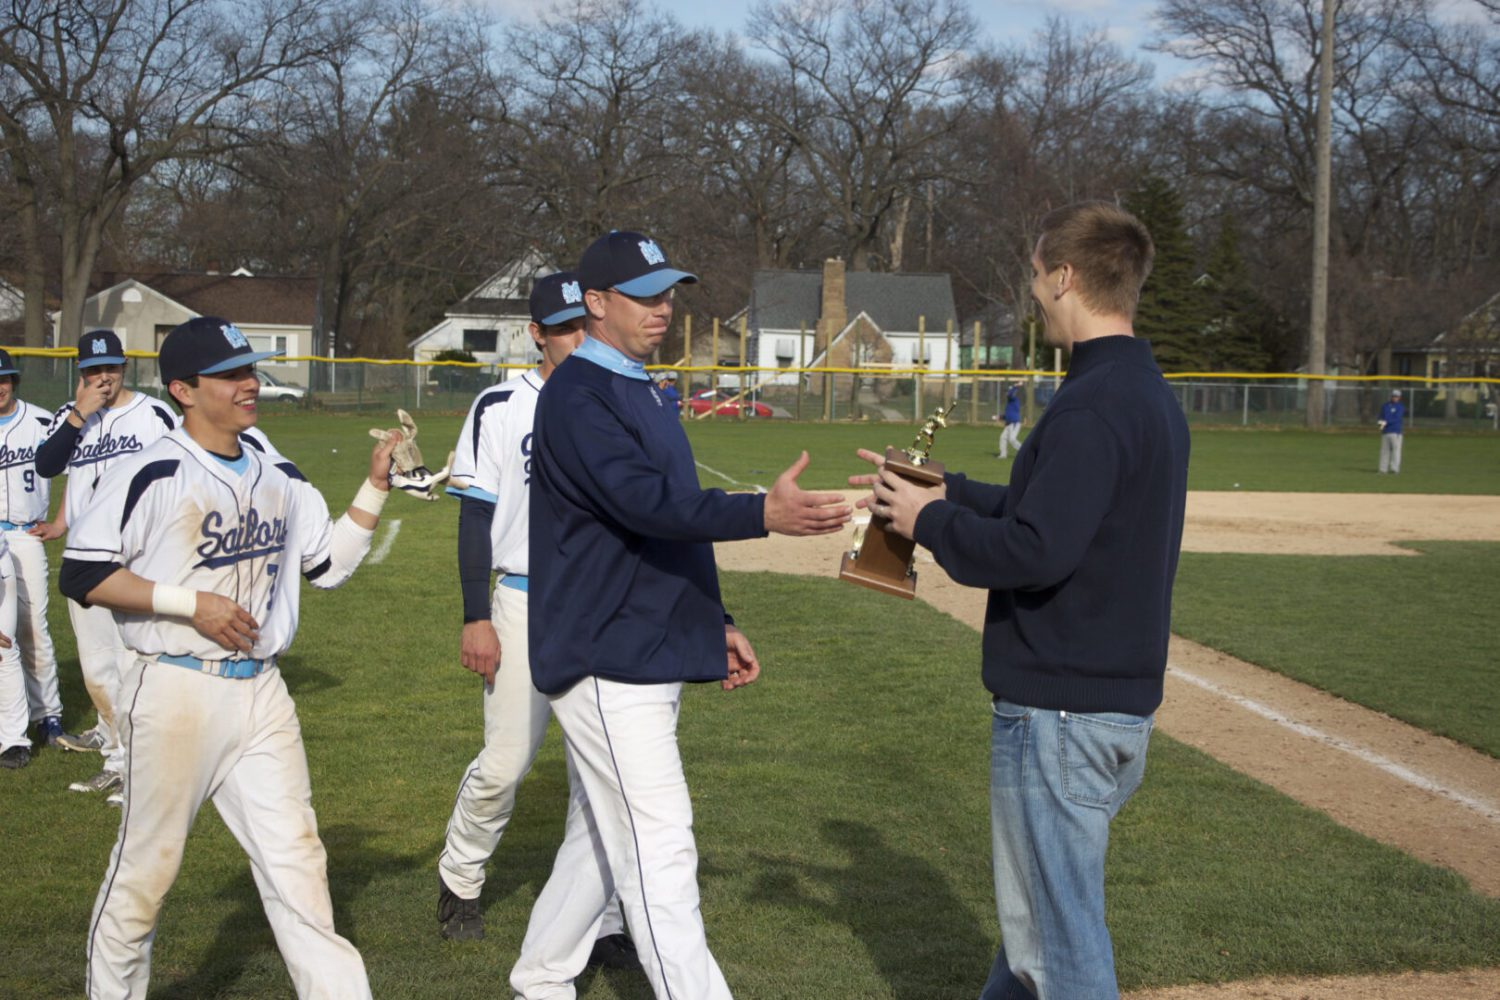 Mona Shores finally gets the breaks, beats rival Rockets for GMAA tier 1 city title